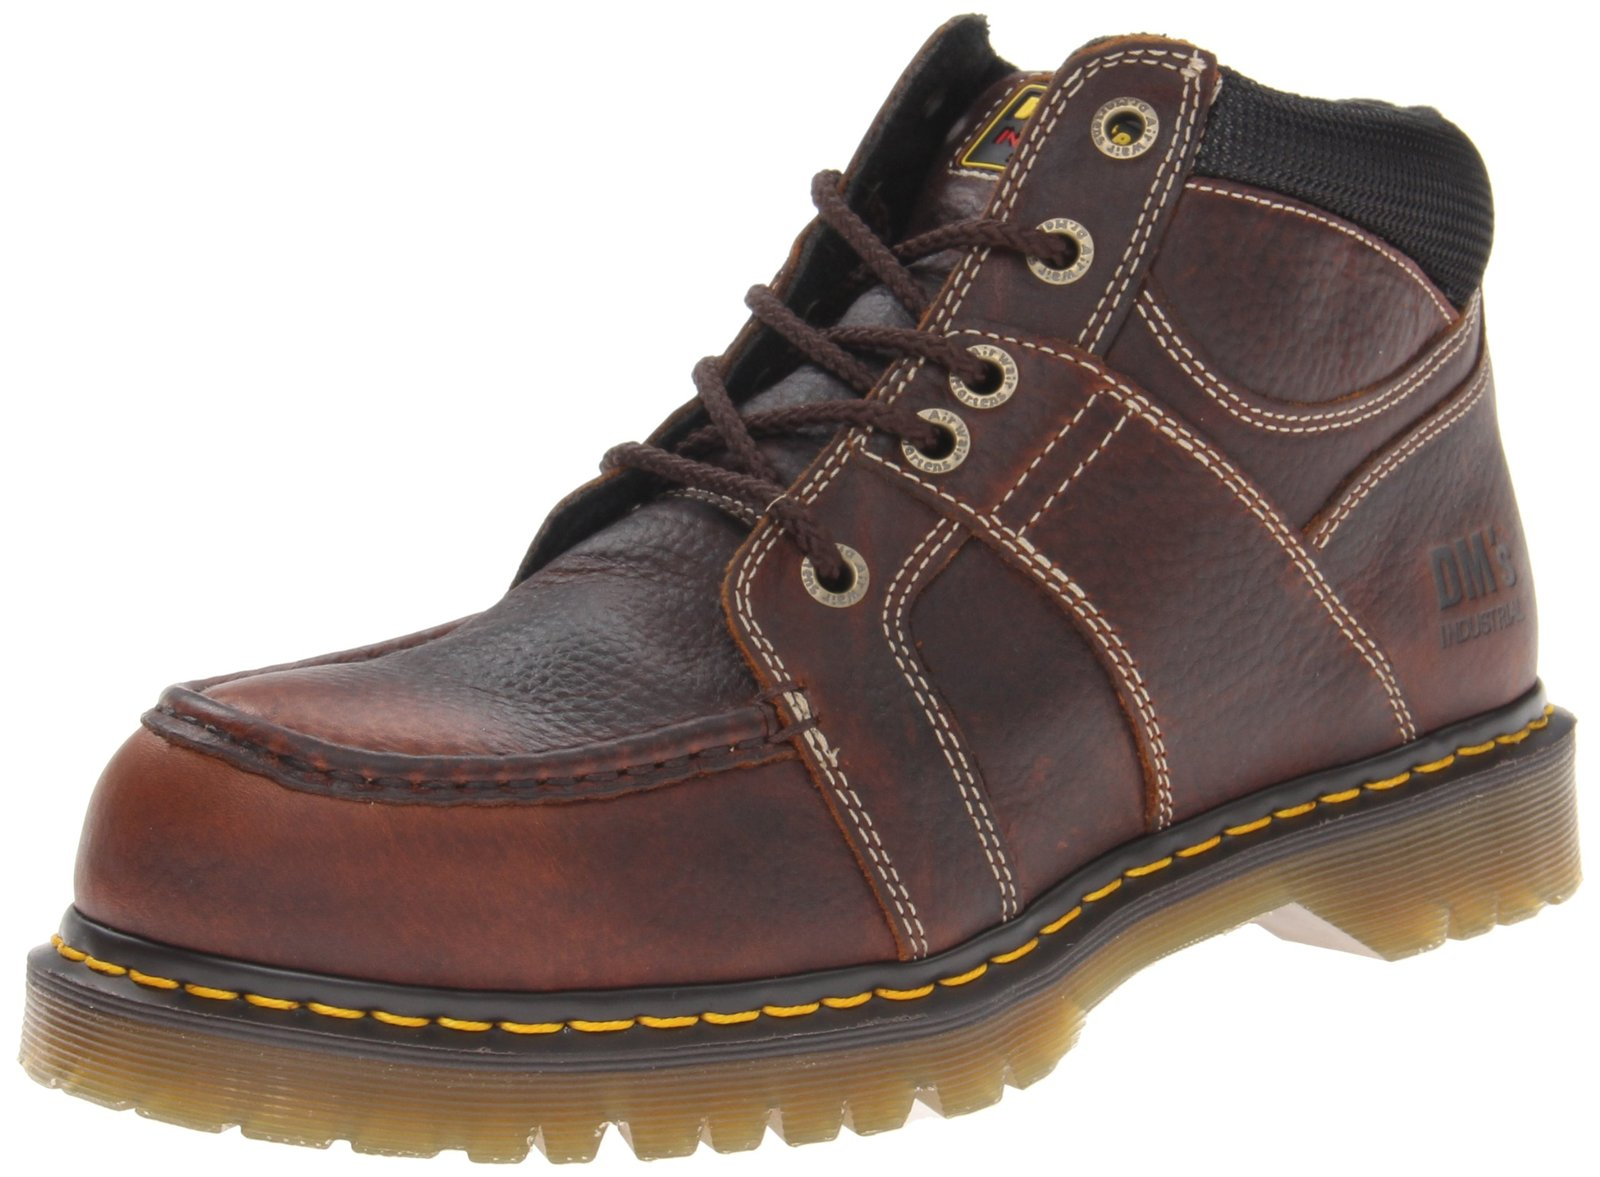 Dr. Martens Men's Darby ST Work Boot,Teak Industrial Bear,8 UK/9 M US